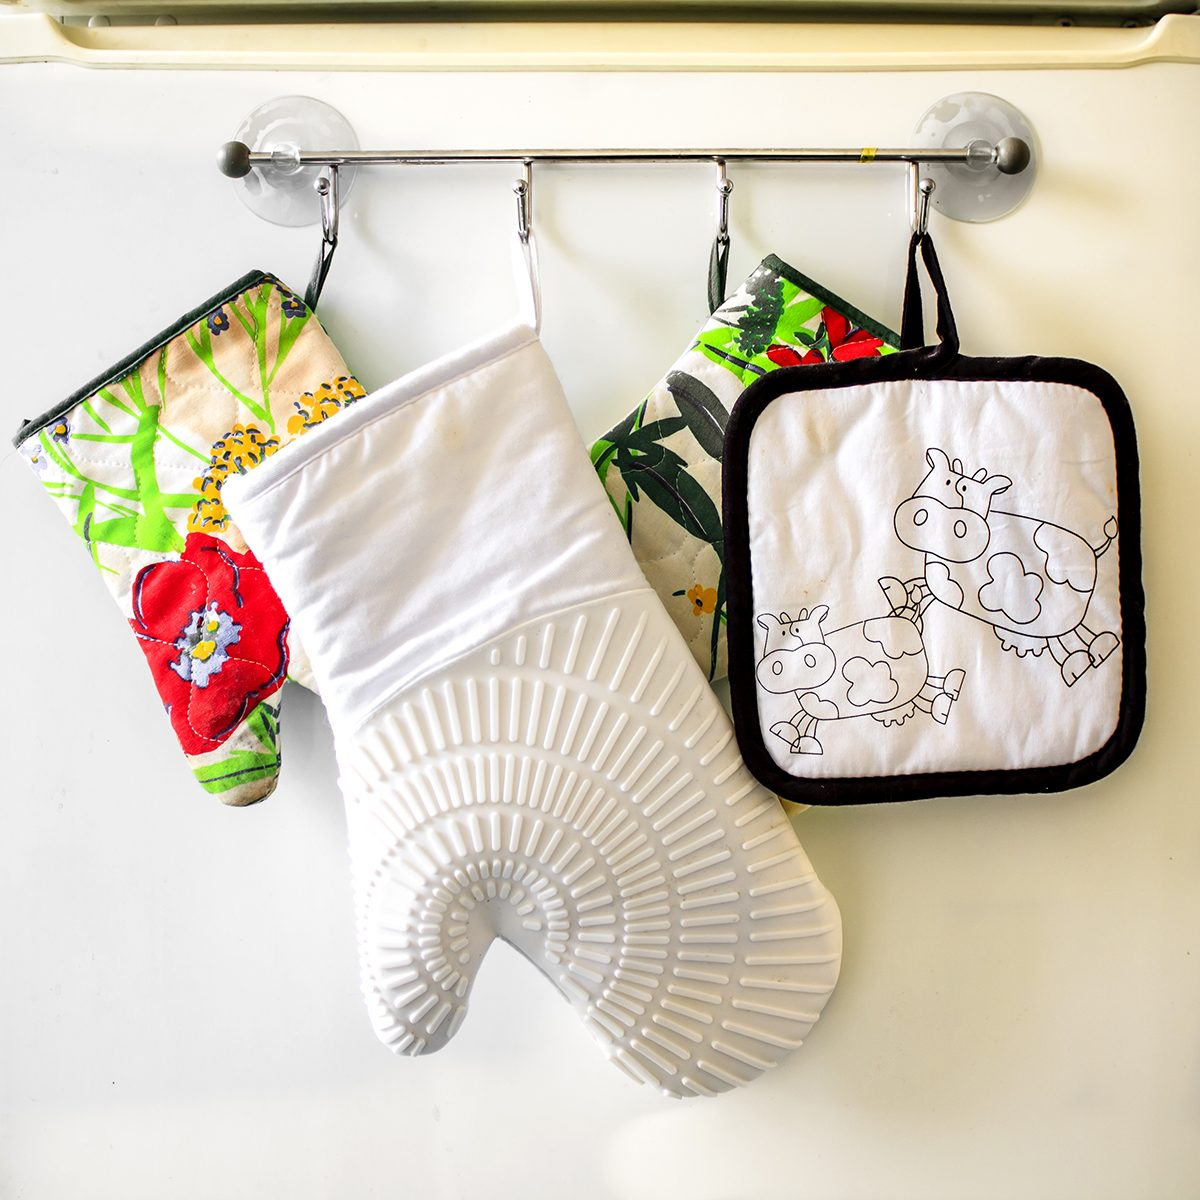 Oven gloves hanging in a row on the kitchen fridge